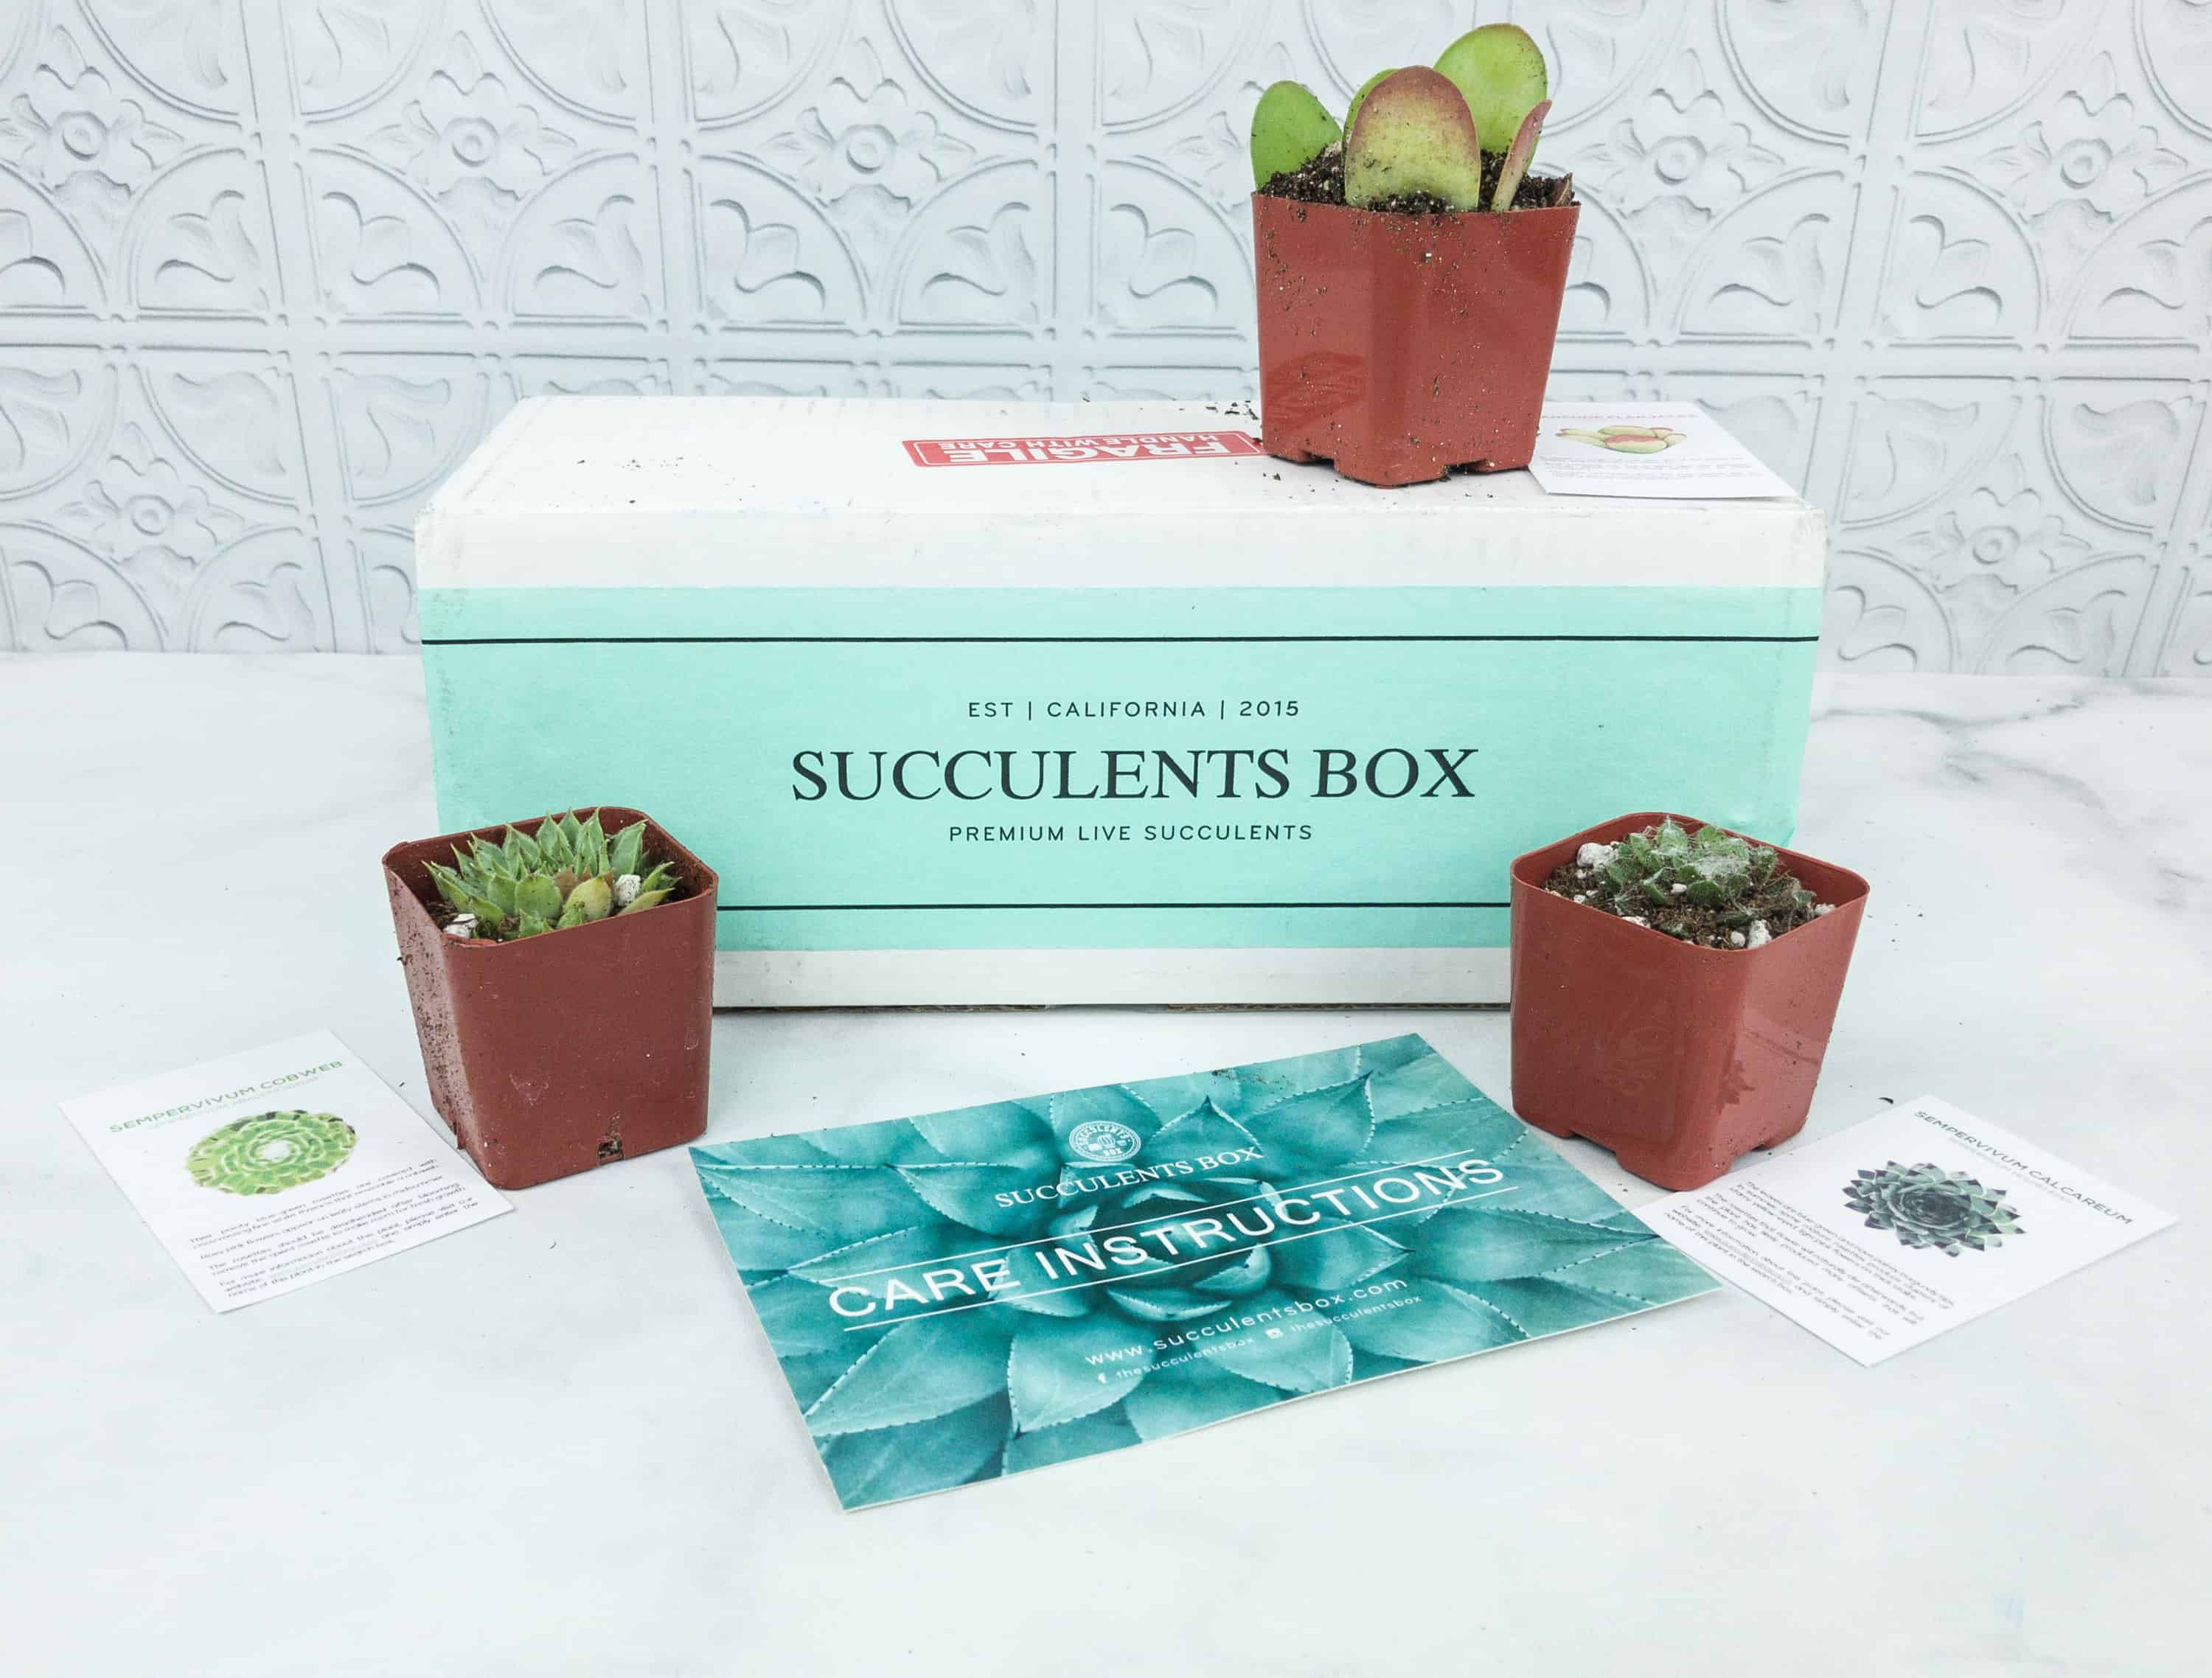 Succulents Box Black Friday Coupon: Get 10% off All Orders of Succulents Box